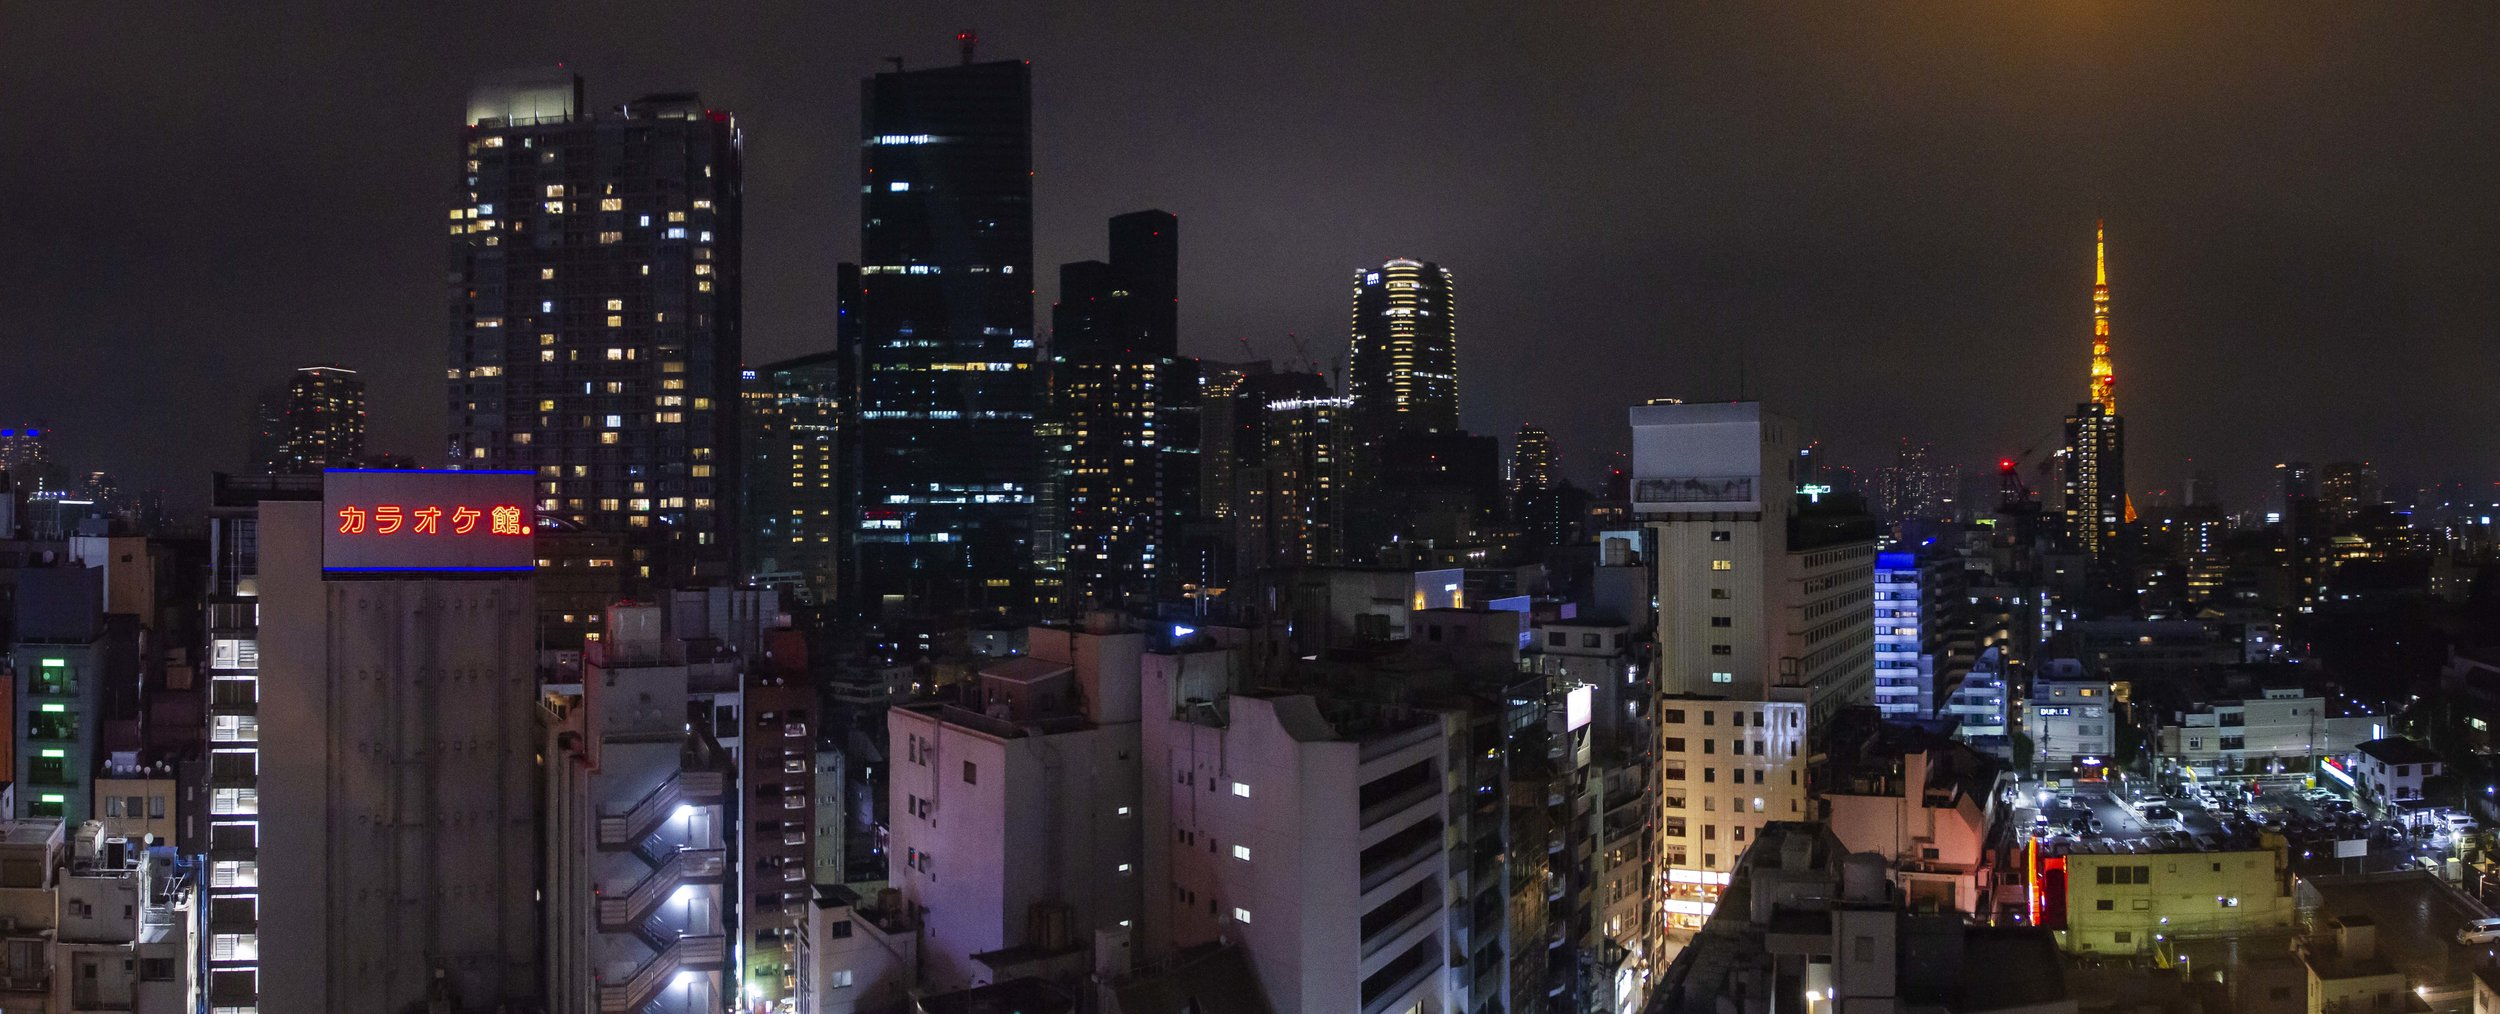 Tokyo from the top of our Hotel in Roppongi. The nocturnal lights of Tokyo lit up the low lying cloud